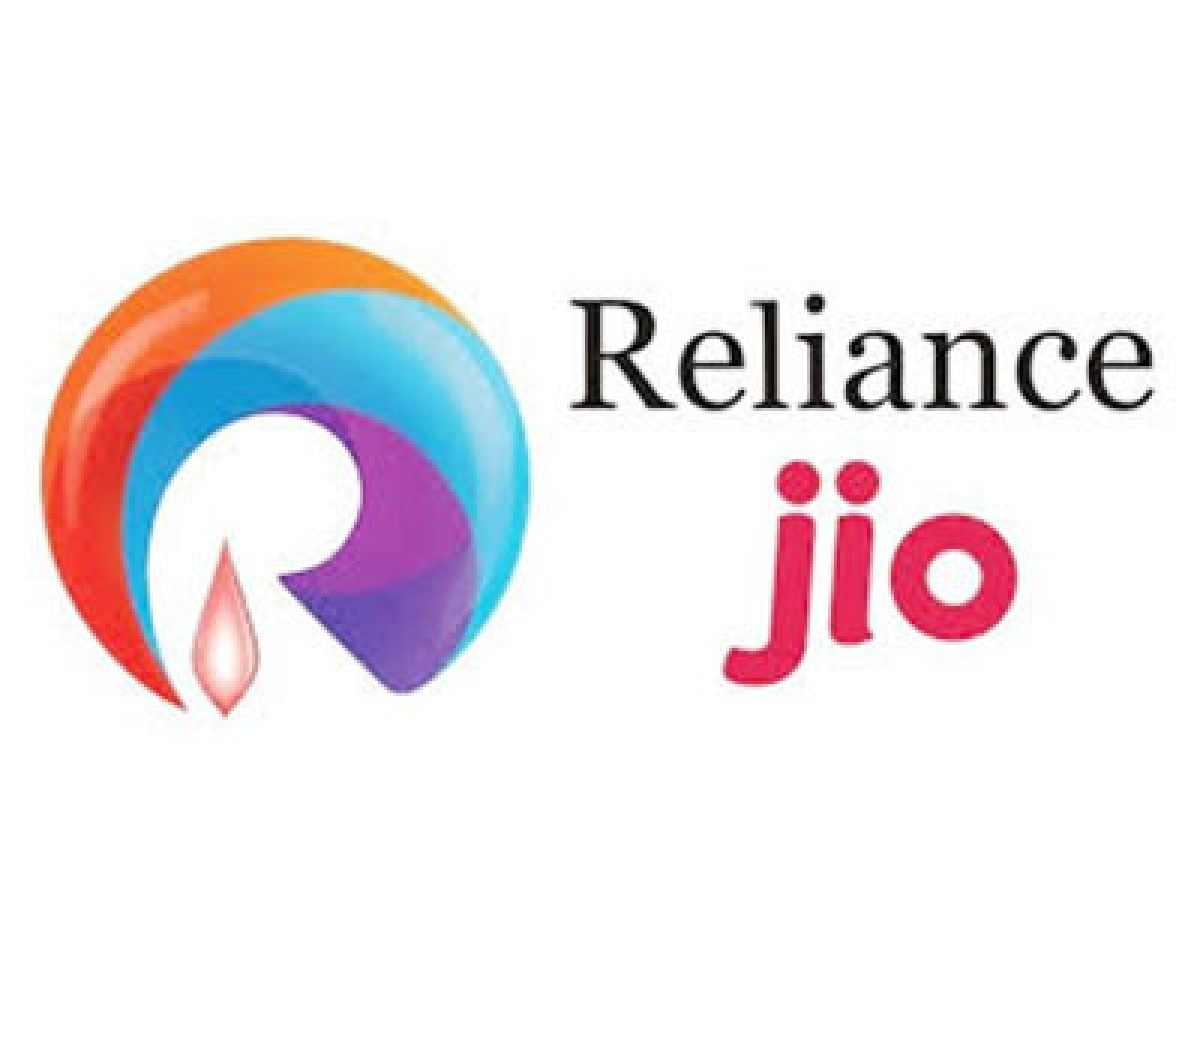 RJio files police complaint alleging unlawful access to its systems